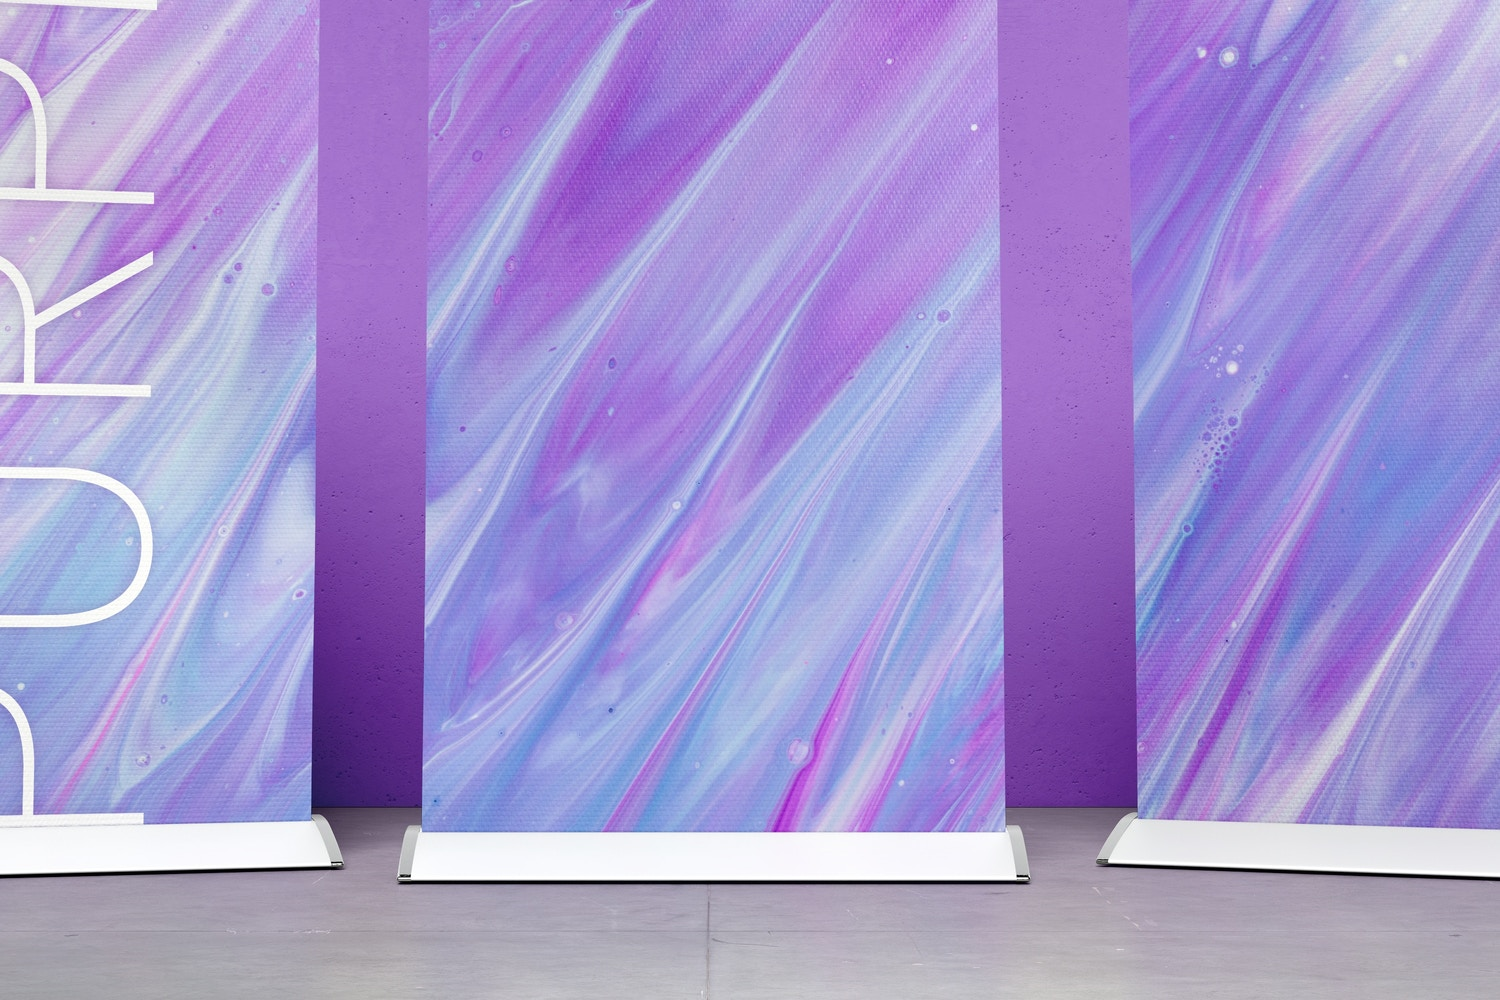 Standing Roll-Up Banners Mockup with a Background Wall 02